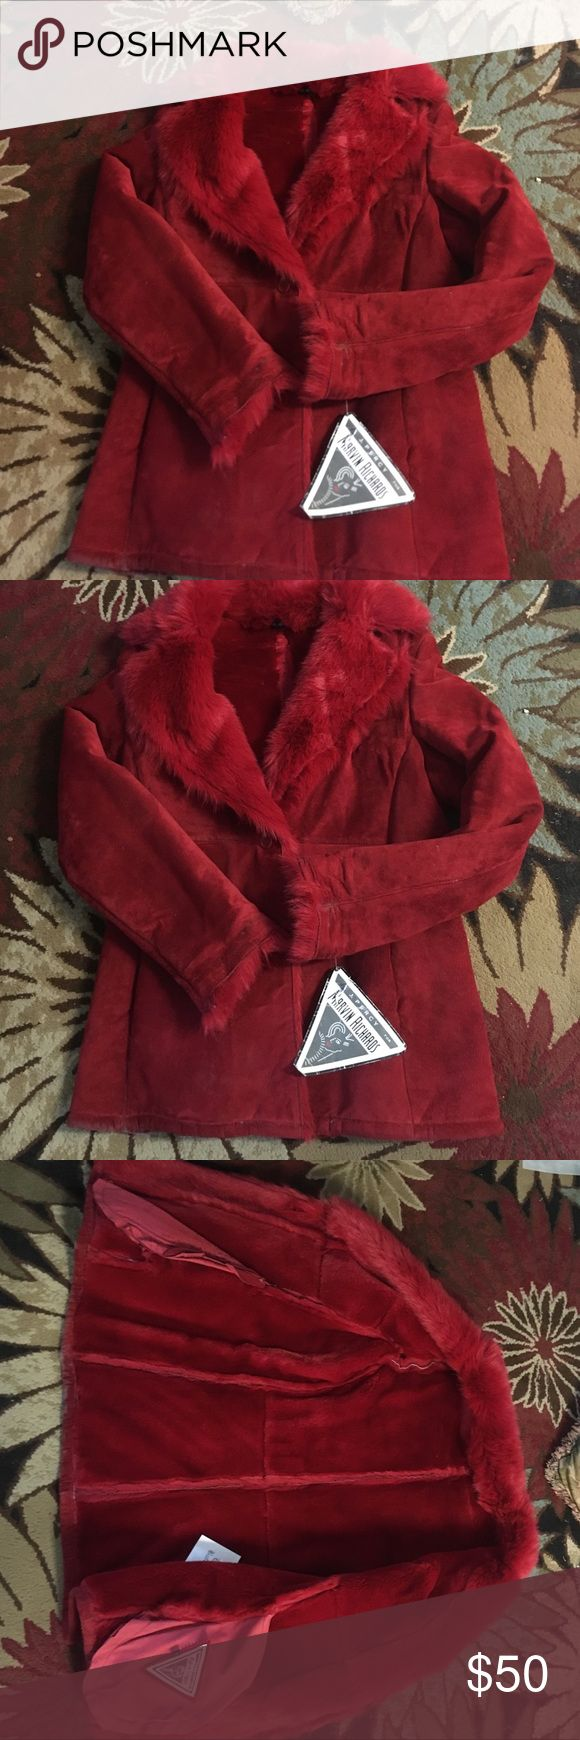 Gorgeous Ruby colored suede and faux fur coat! This coat is amazing and very very warm!  Vintage from Victoria's Secret catalog by Marvin Richards! NWT and has been kept in plastic.  I live at the beach now and can't wear it... Extra buttons. Marvin Richards Jackets & Coats